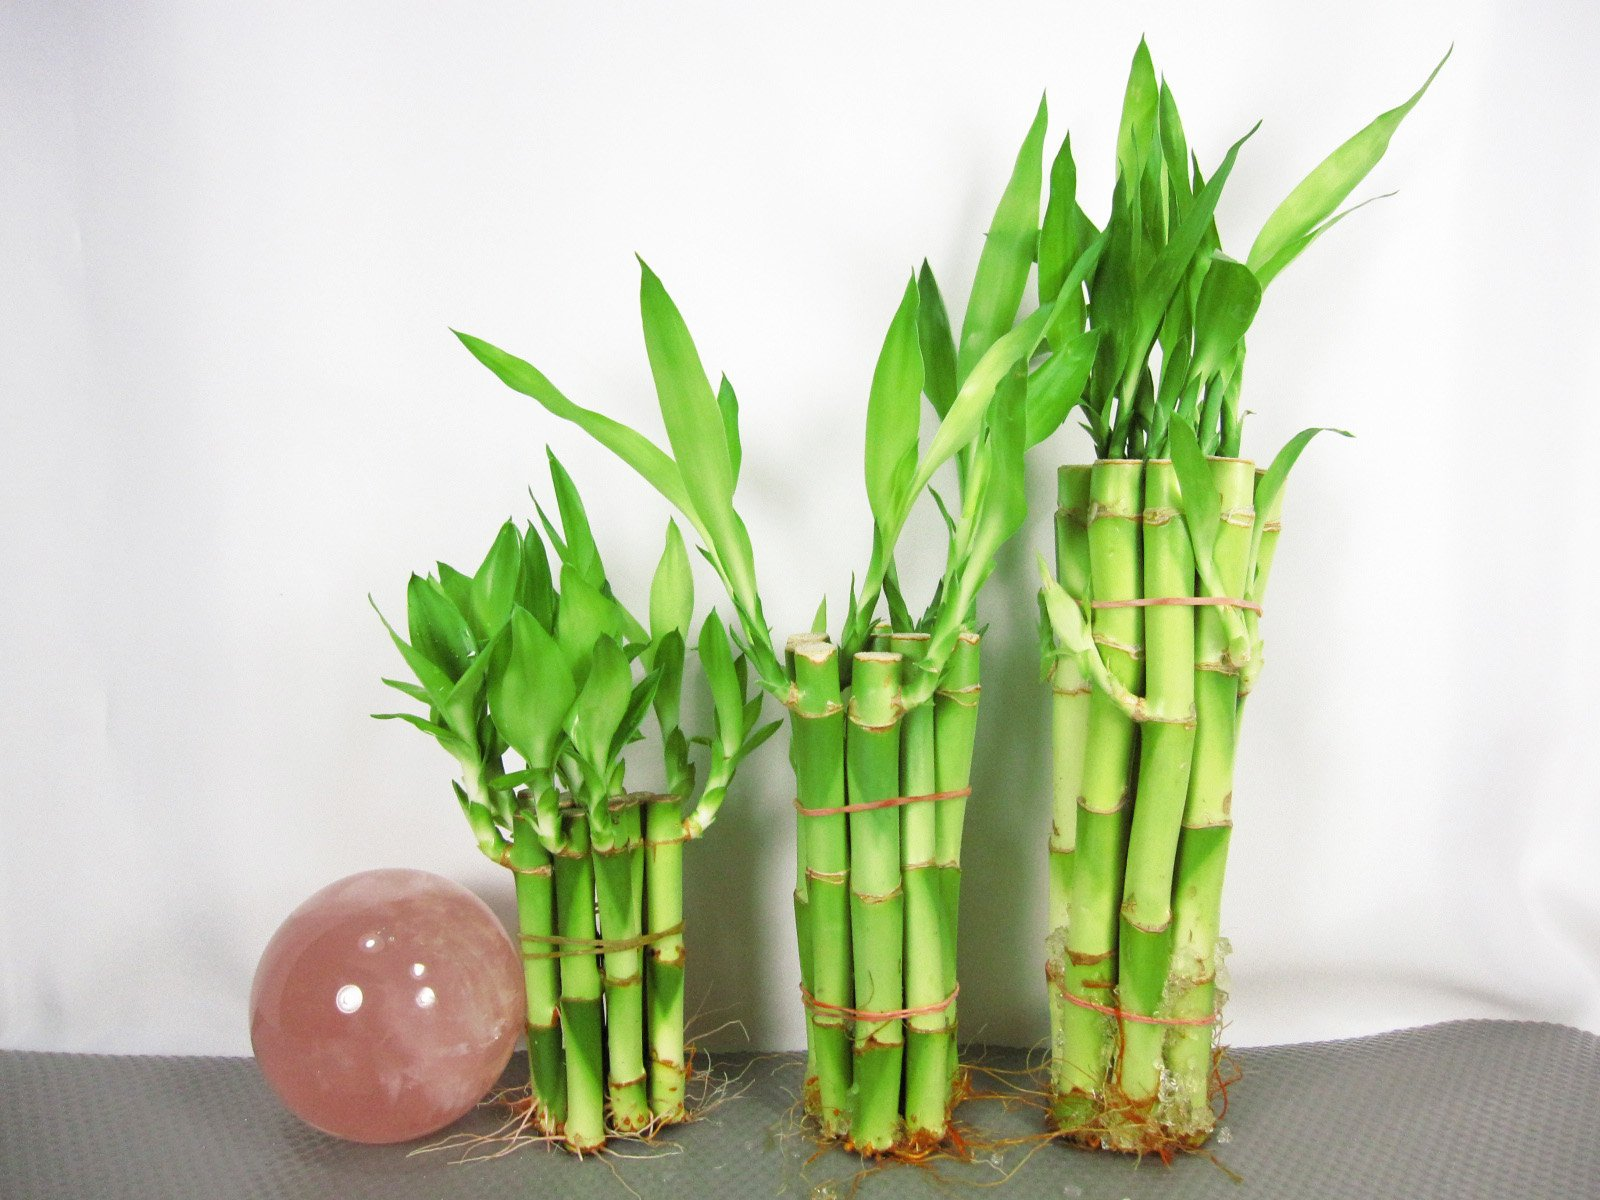 9GreenBox: Lucky Bamboo - Set 4''x10, 6''x10, 8''x10